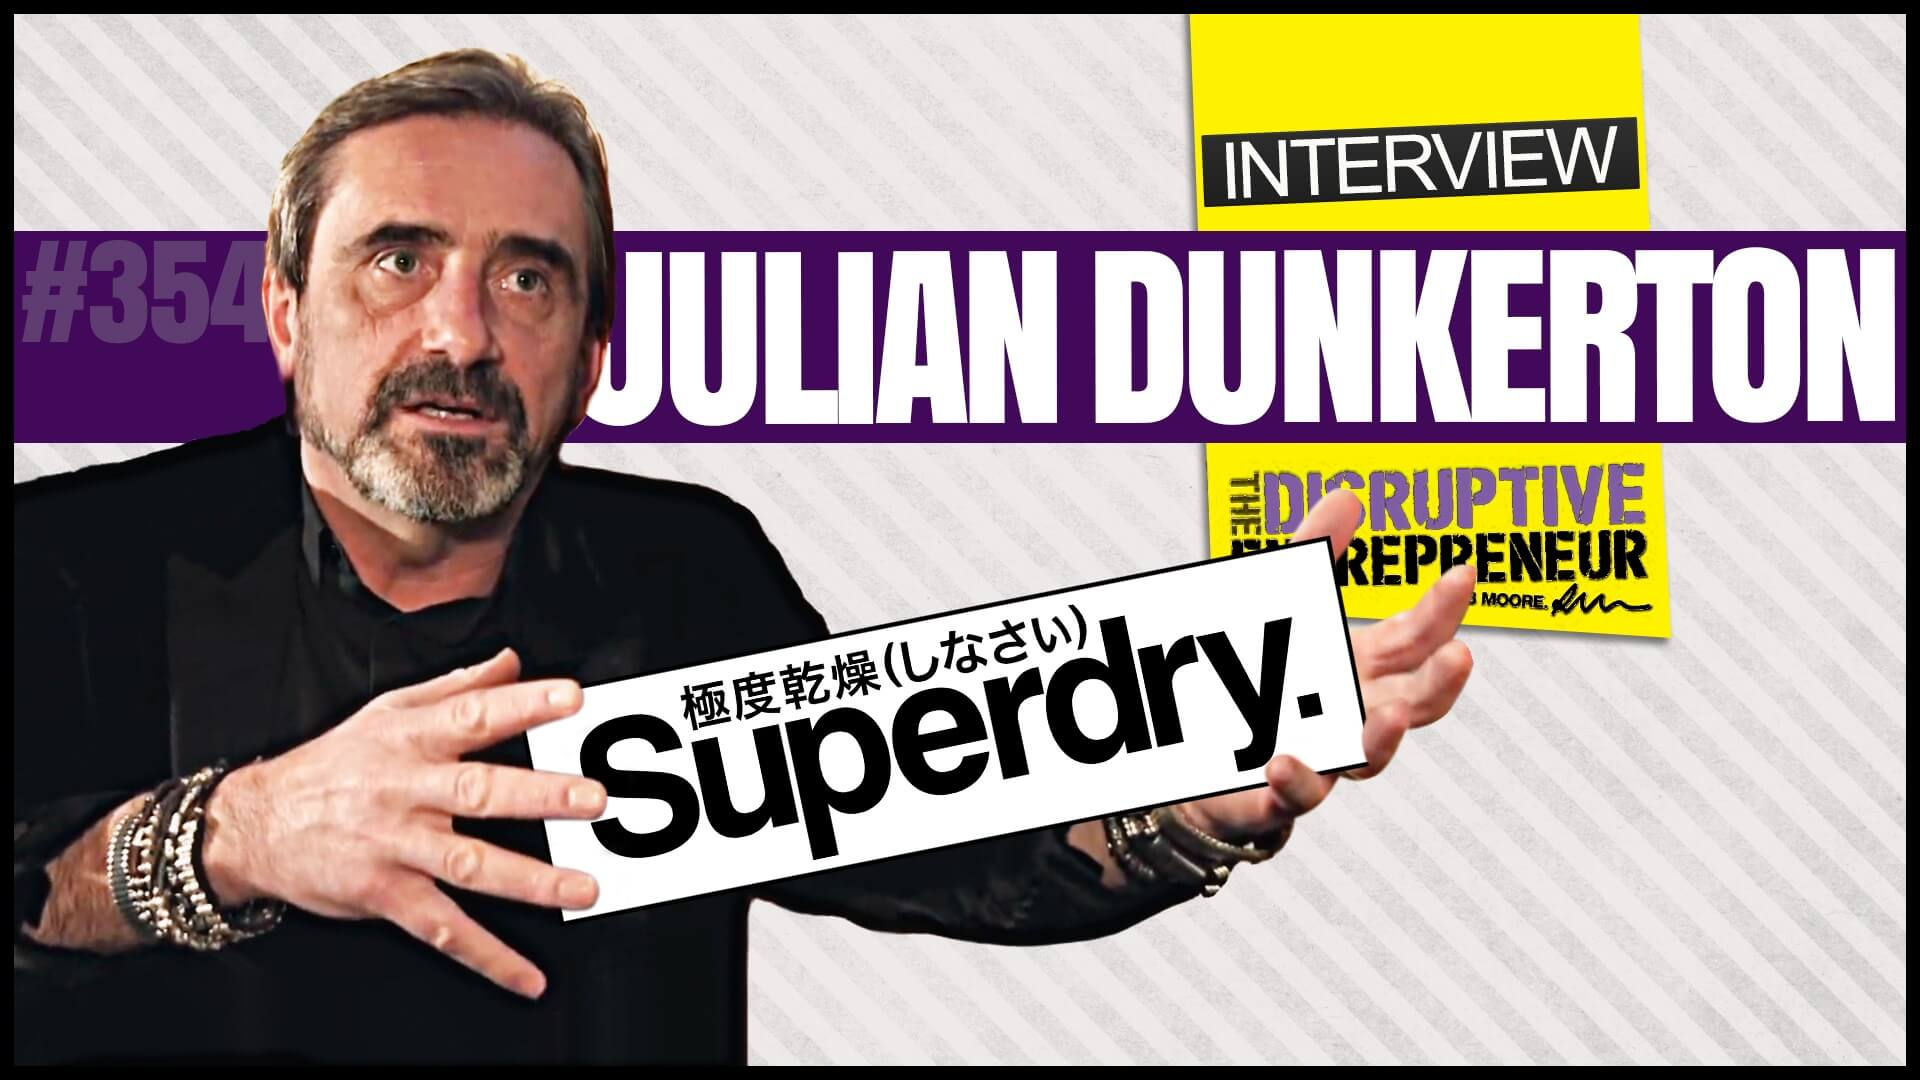 Interview with Julian Dunkerton, the Co-Founder of Superdry